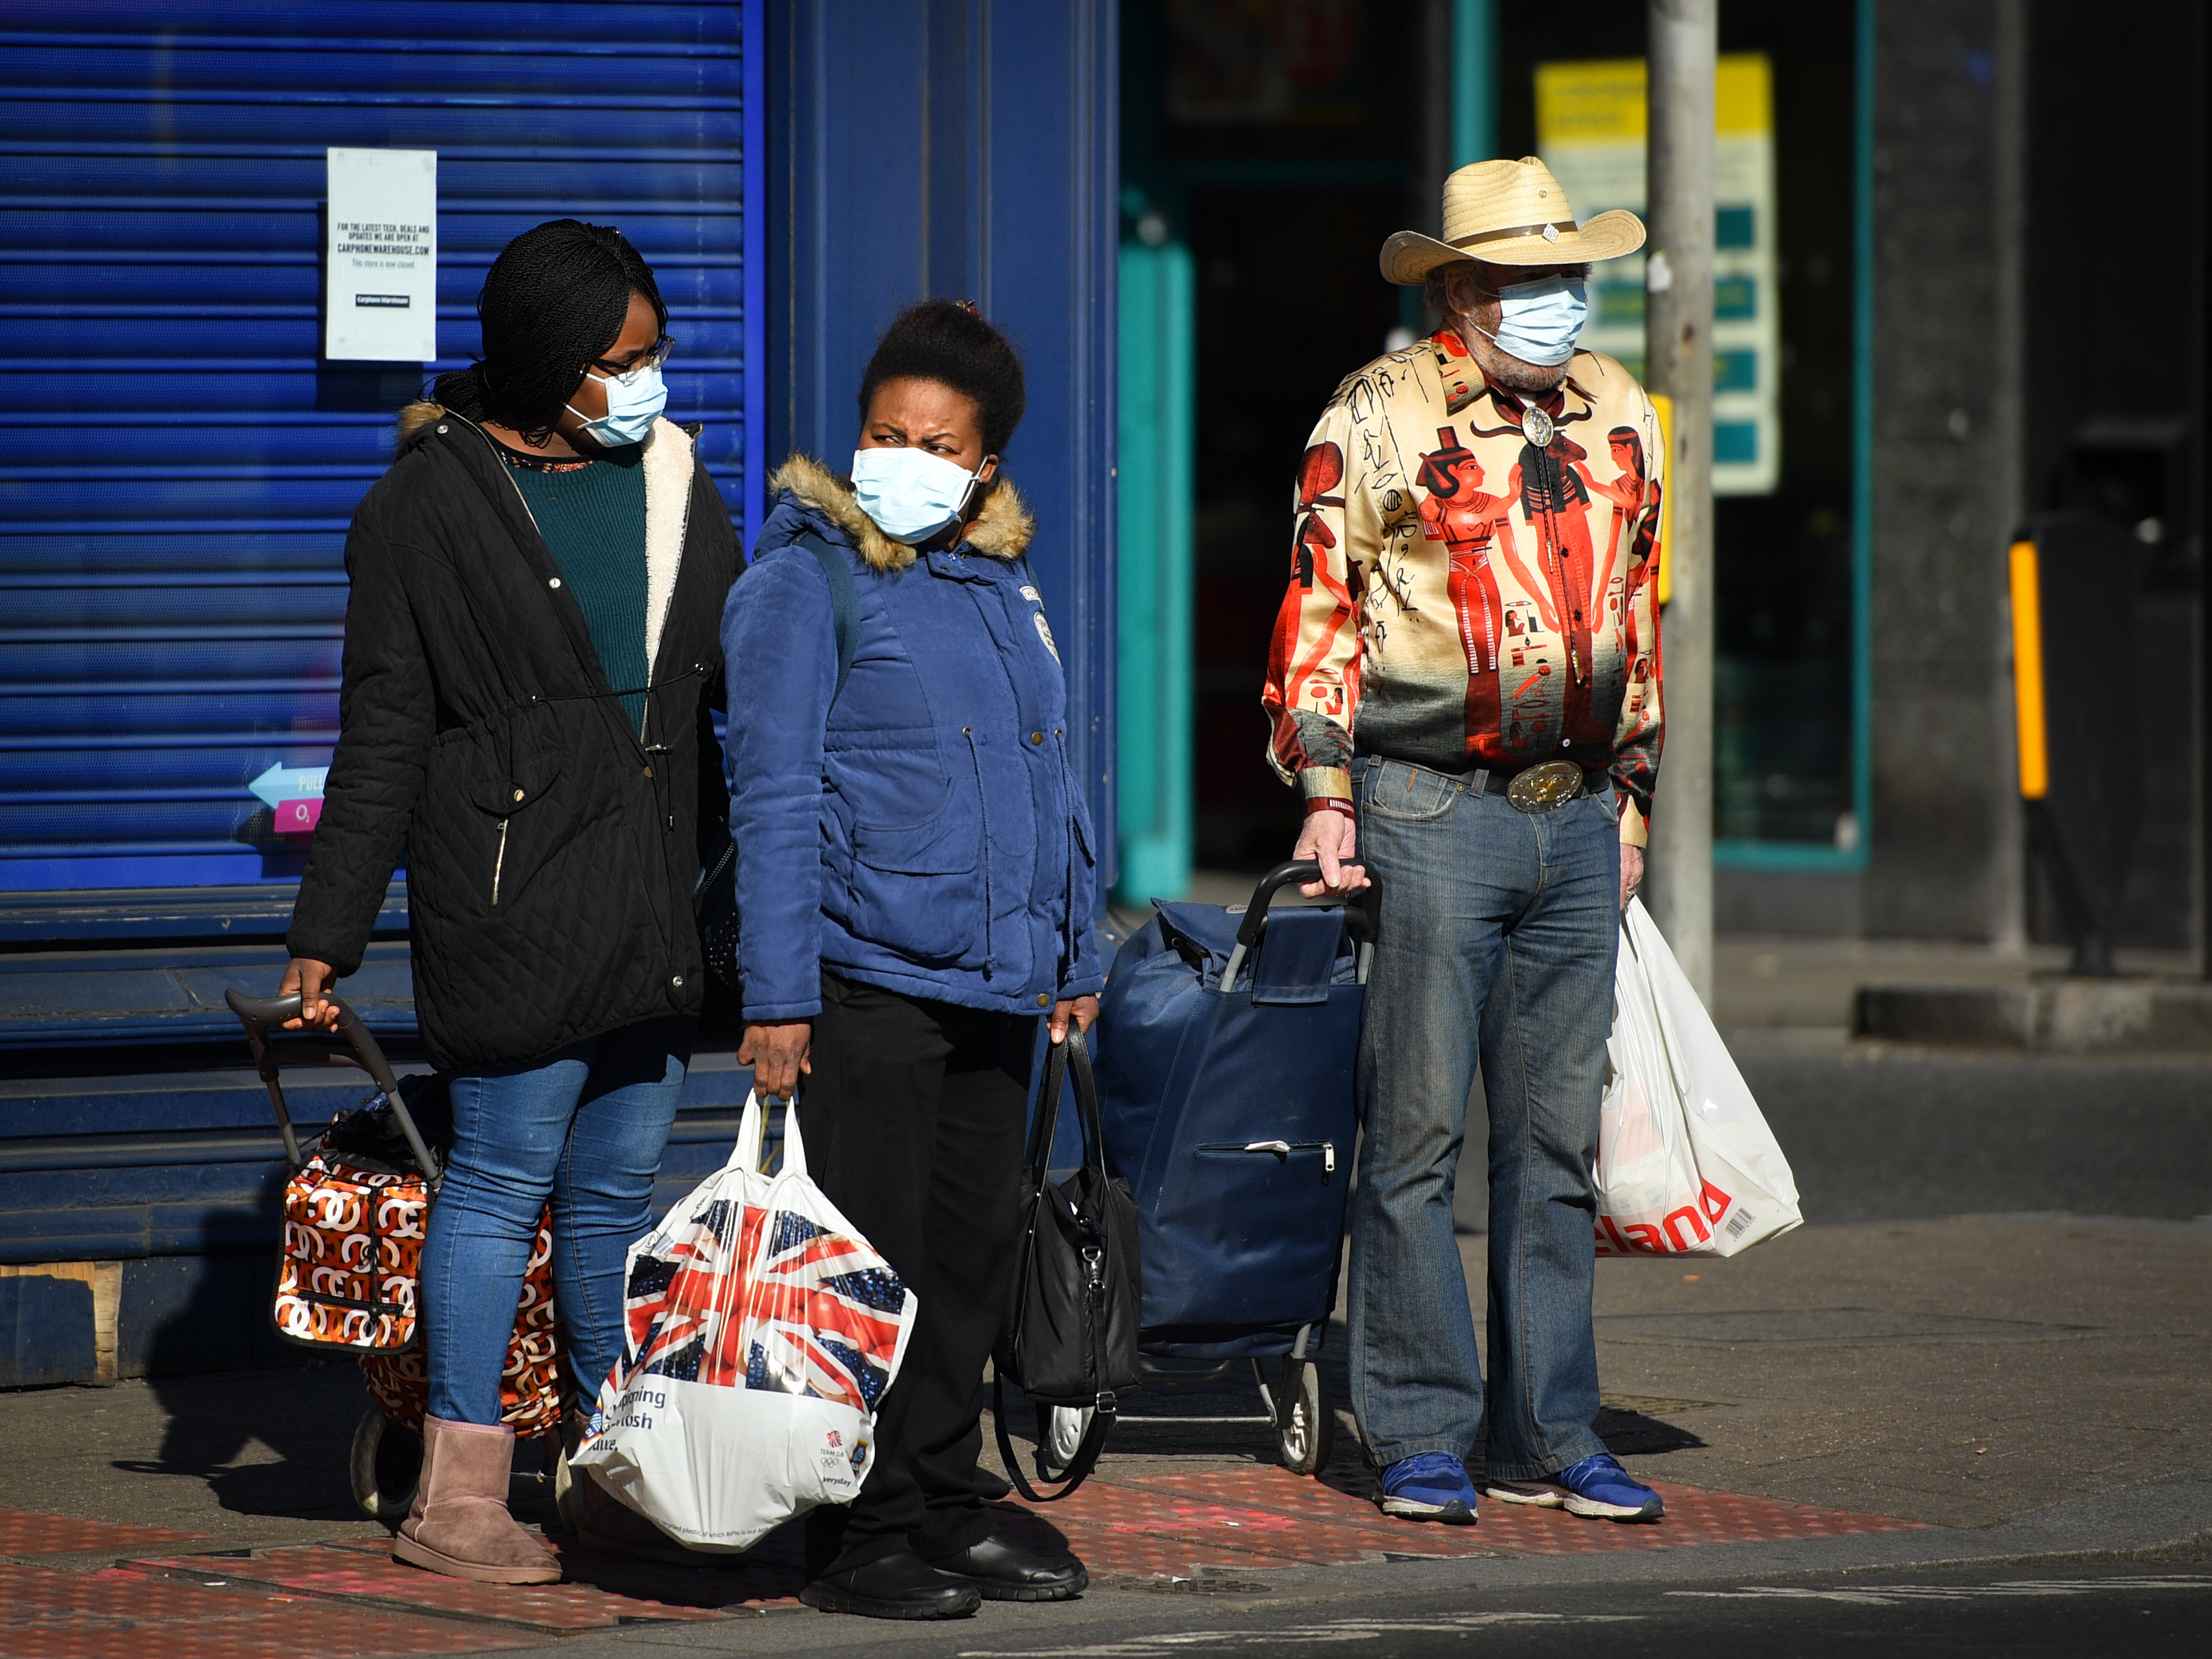 People wearing protective masks whilst shopping in South London as the UK continues in lockdown to help curb the spread of the coronavirus.